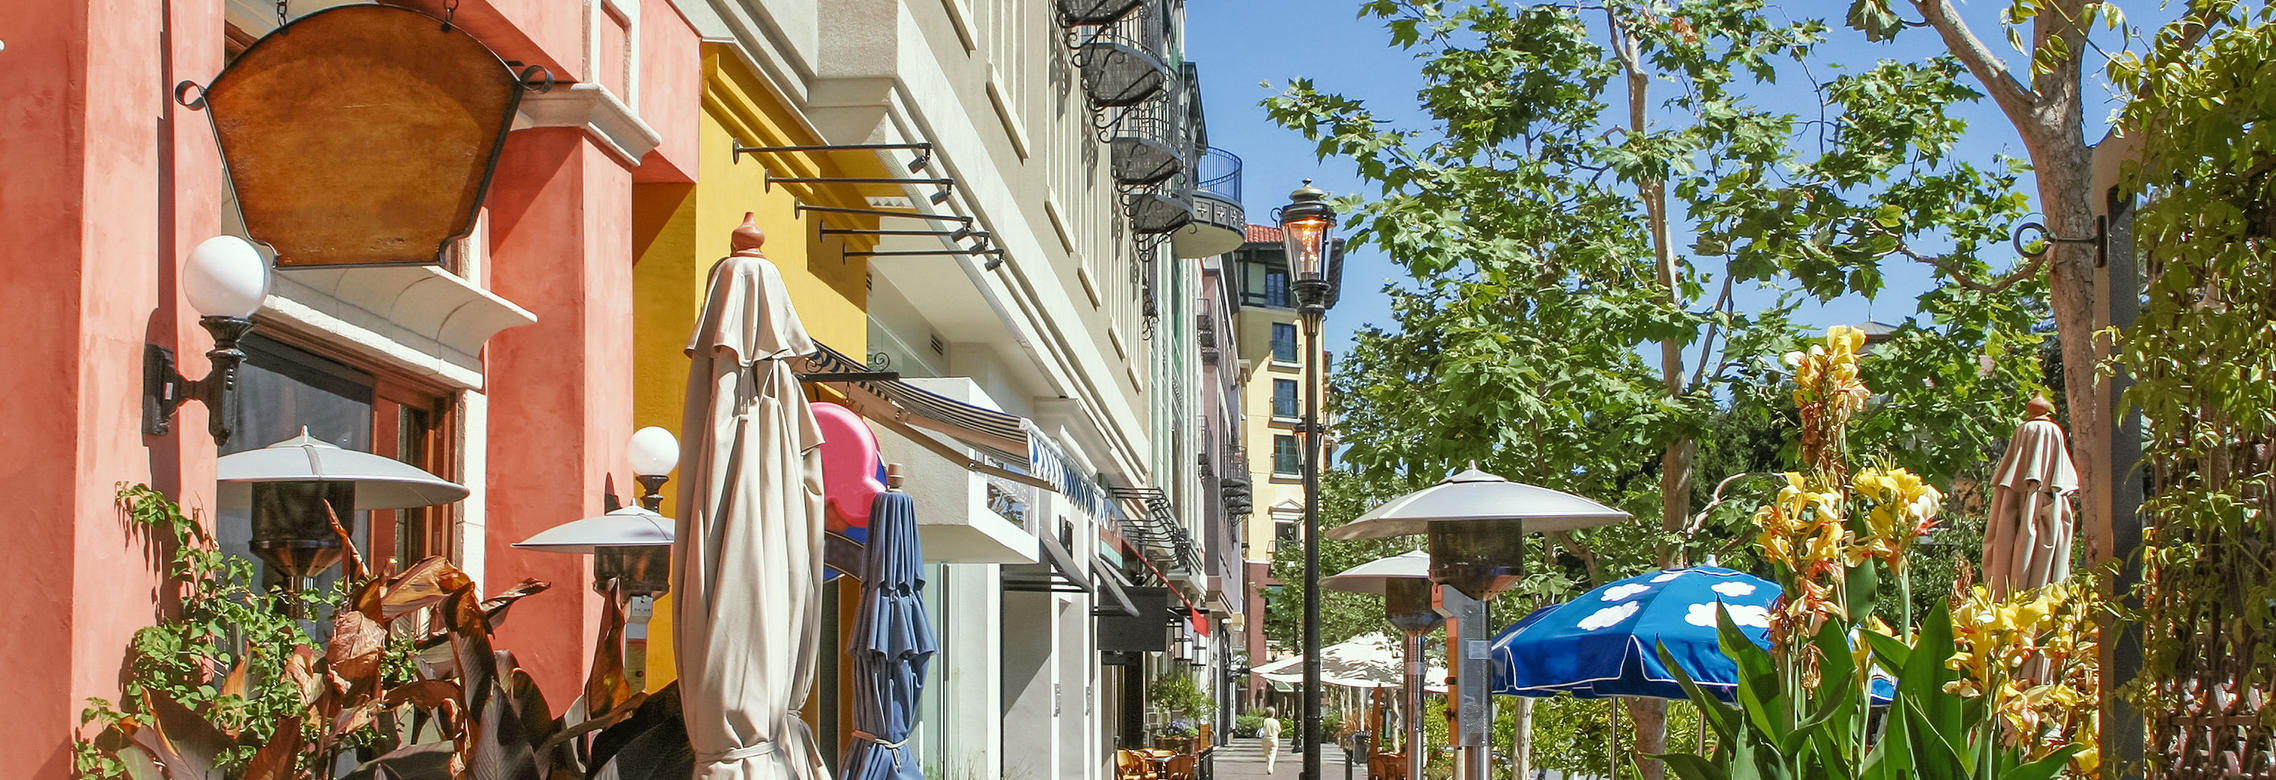 Scenery of the shopping street in San Jose